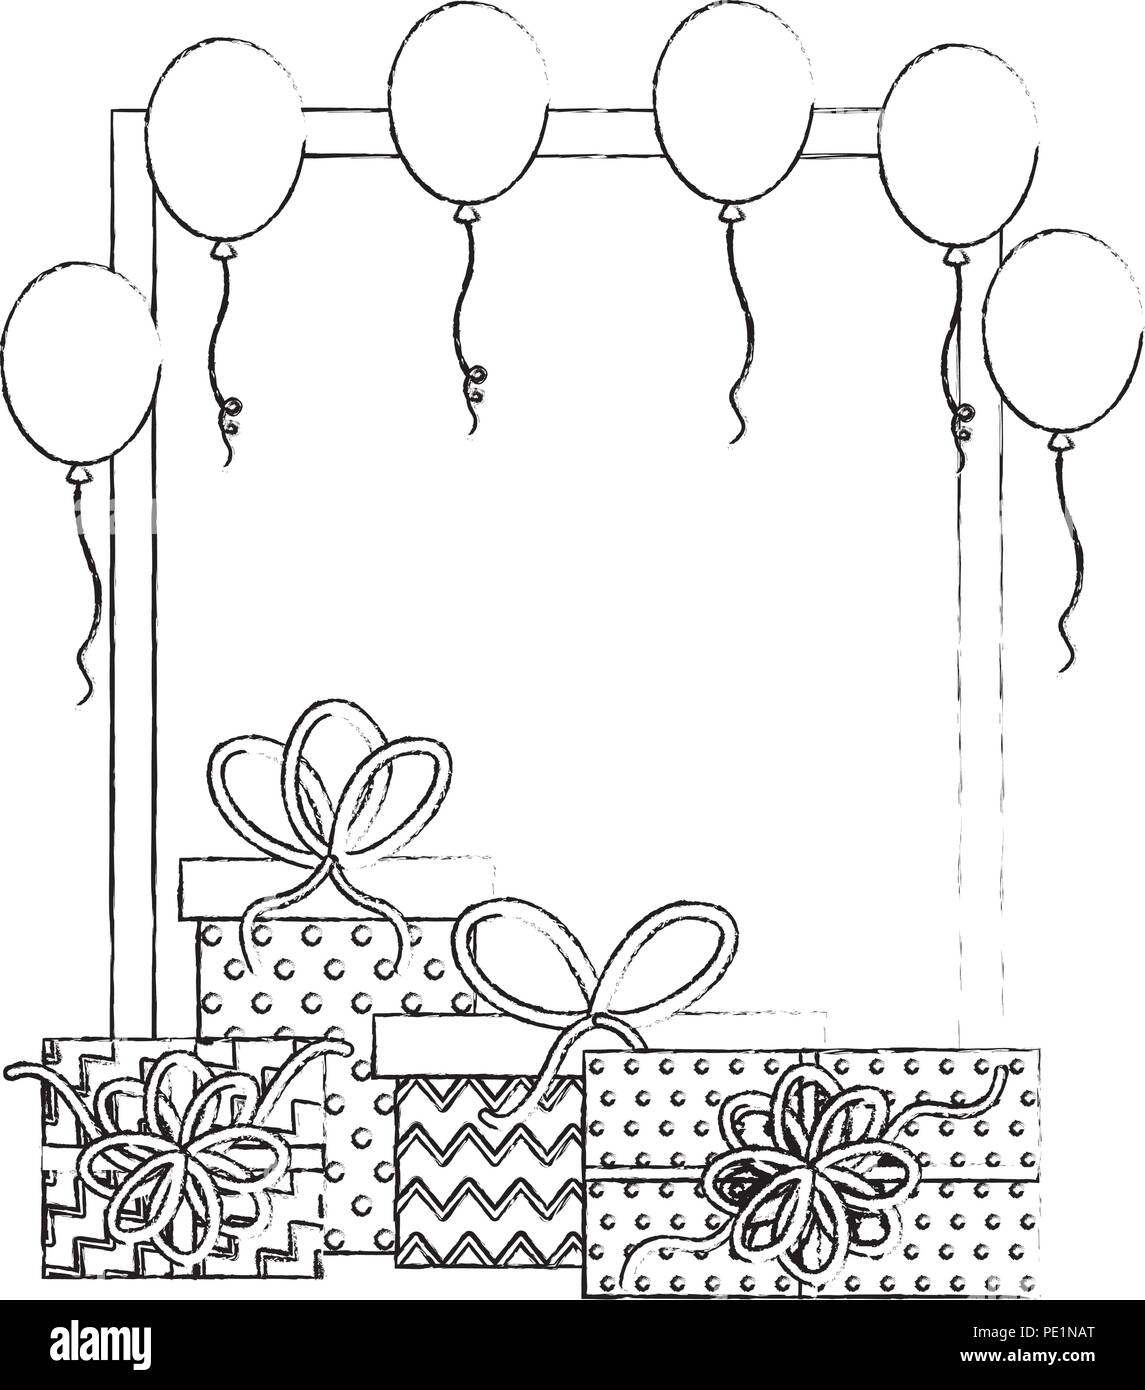 Birthday Gift Boxes Balloons Frame Decoration Hand Drawing Design